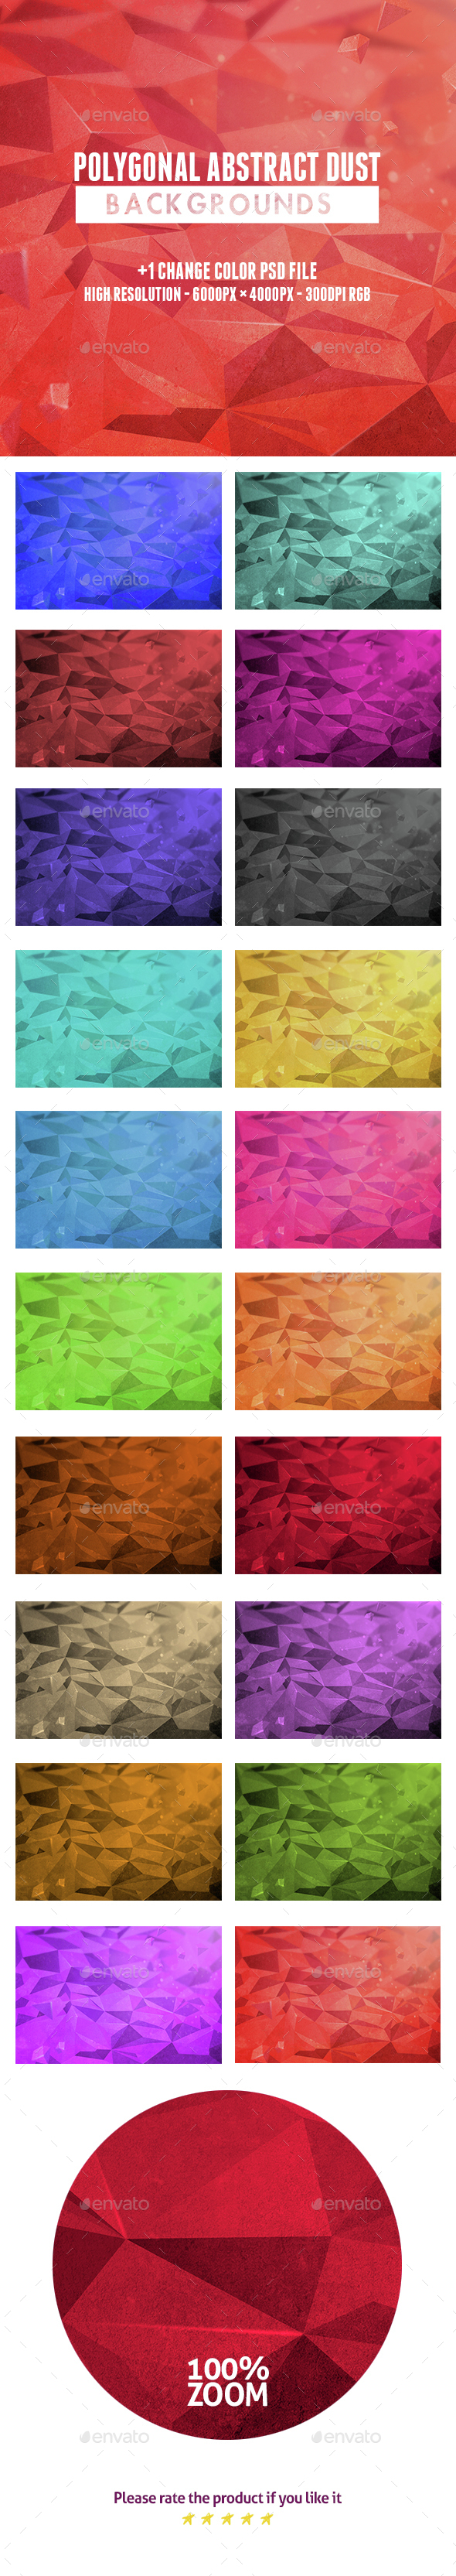 Polygonal Abstract Dust Backgrounds - Backgrounds Graphics